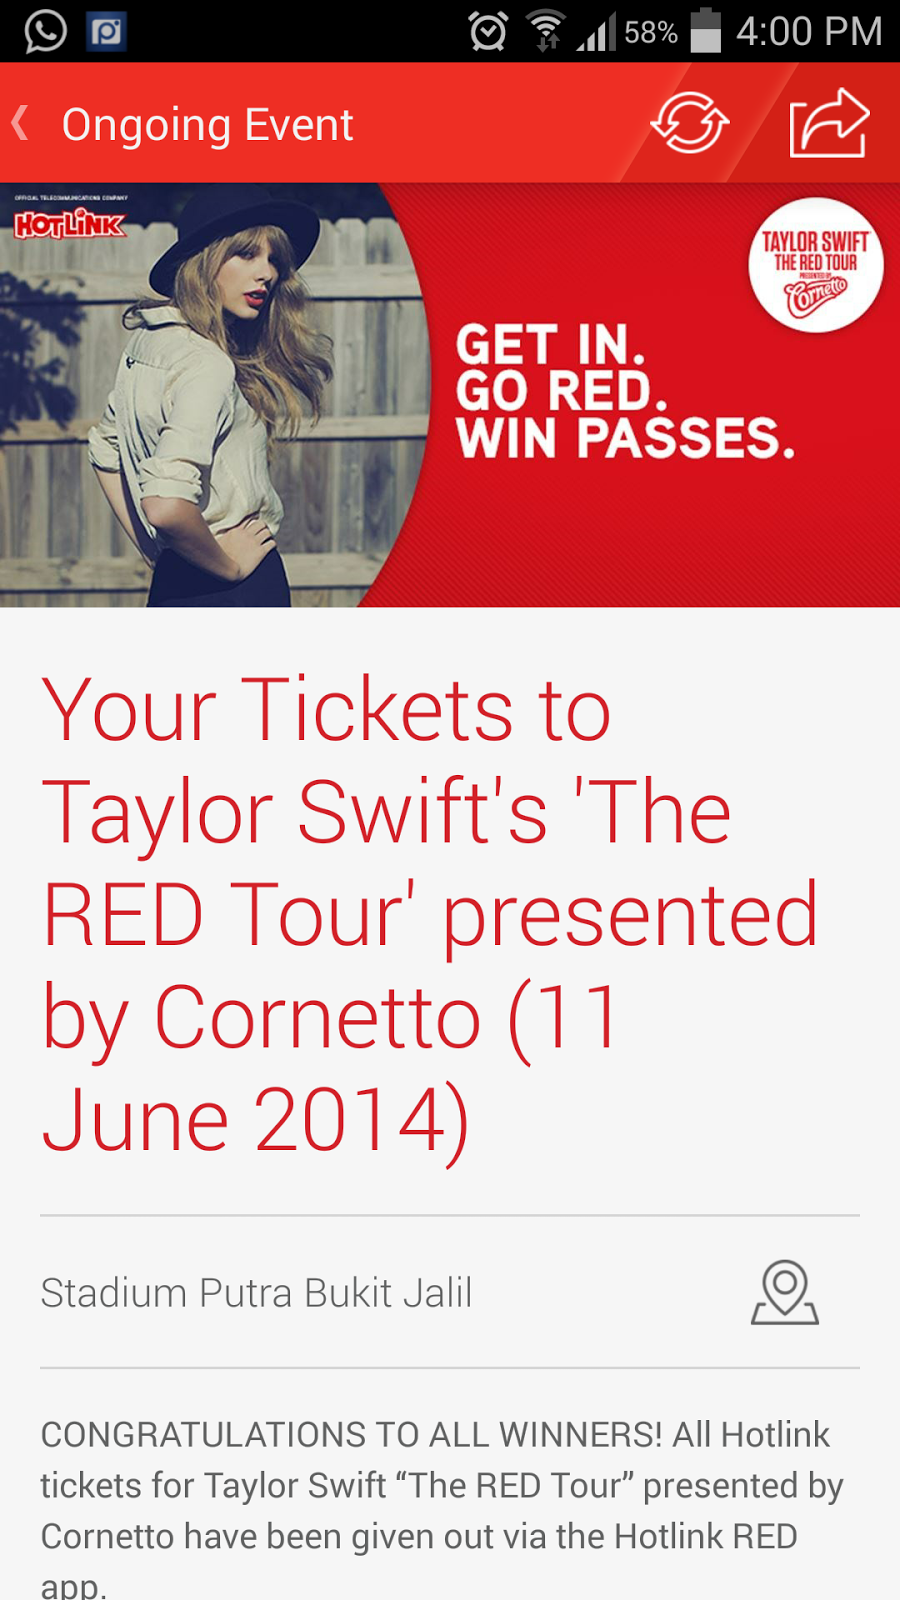 Taylor Swift 'The RED Tour' ULTIMATE Fans Event @ Publika 7th June 2014 (Saturday) The Square, Publika